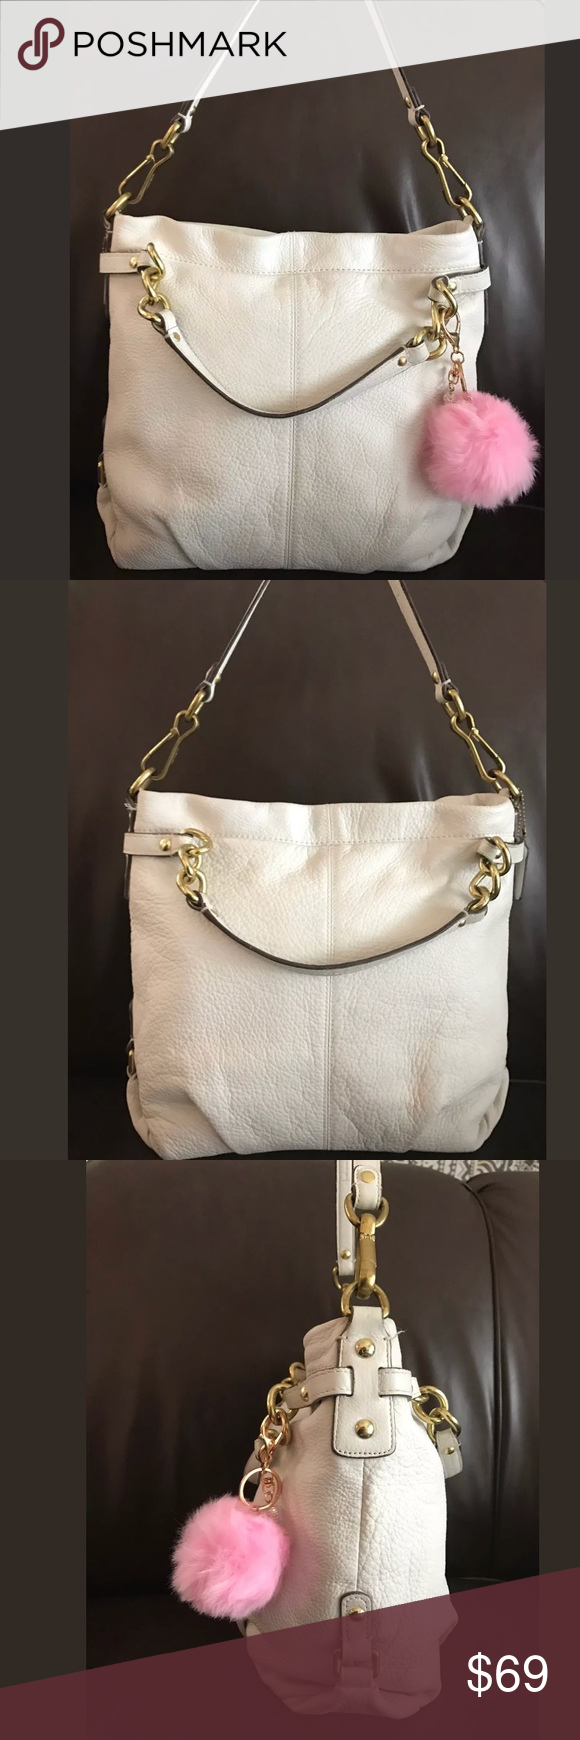 """COACH Brooke Pebbled Leather Shoulder Bag F17165 offering a beautiful COACH Brooke White Pebbled Leather Shoulder Bag, Handbag number F17165 in great condition.  This purse is pre-loved with normal wear, looks great. This Pebbled heavy leather with a removable Shoulder strap with a 9"""" drop along with 2 handles on gold chains with a 5"""" drop.  The purse measures 12"""" by 11"""" by 5"""". The interior has a couple of small spots barely noticeable in a beautiful lavender Satin with compartments to keep…"""